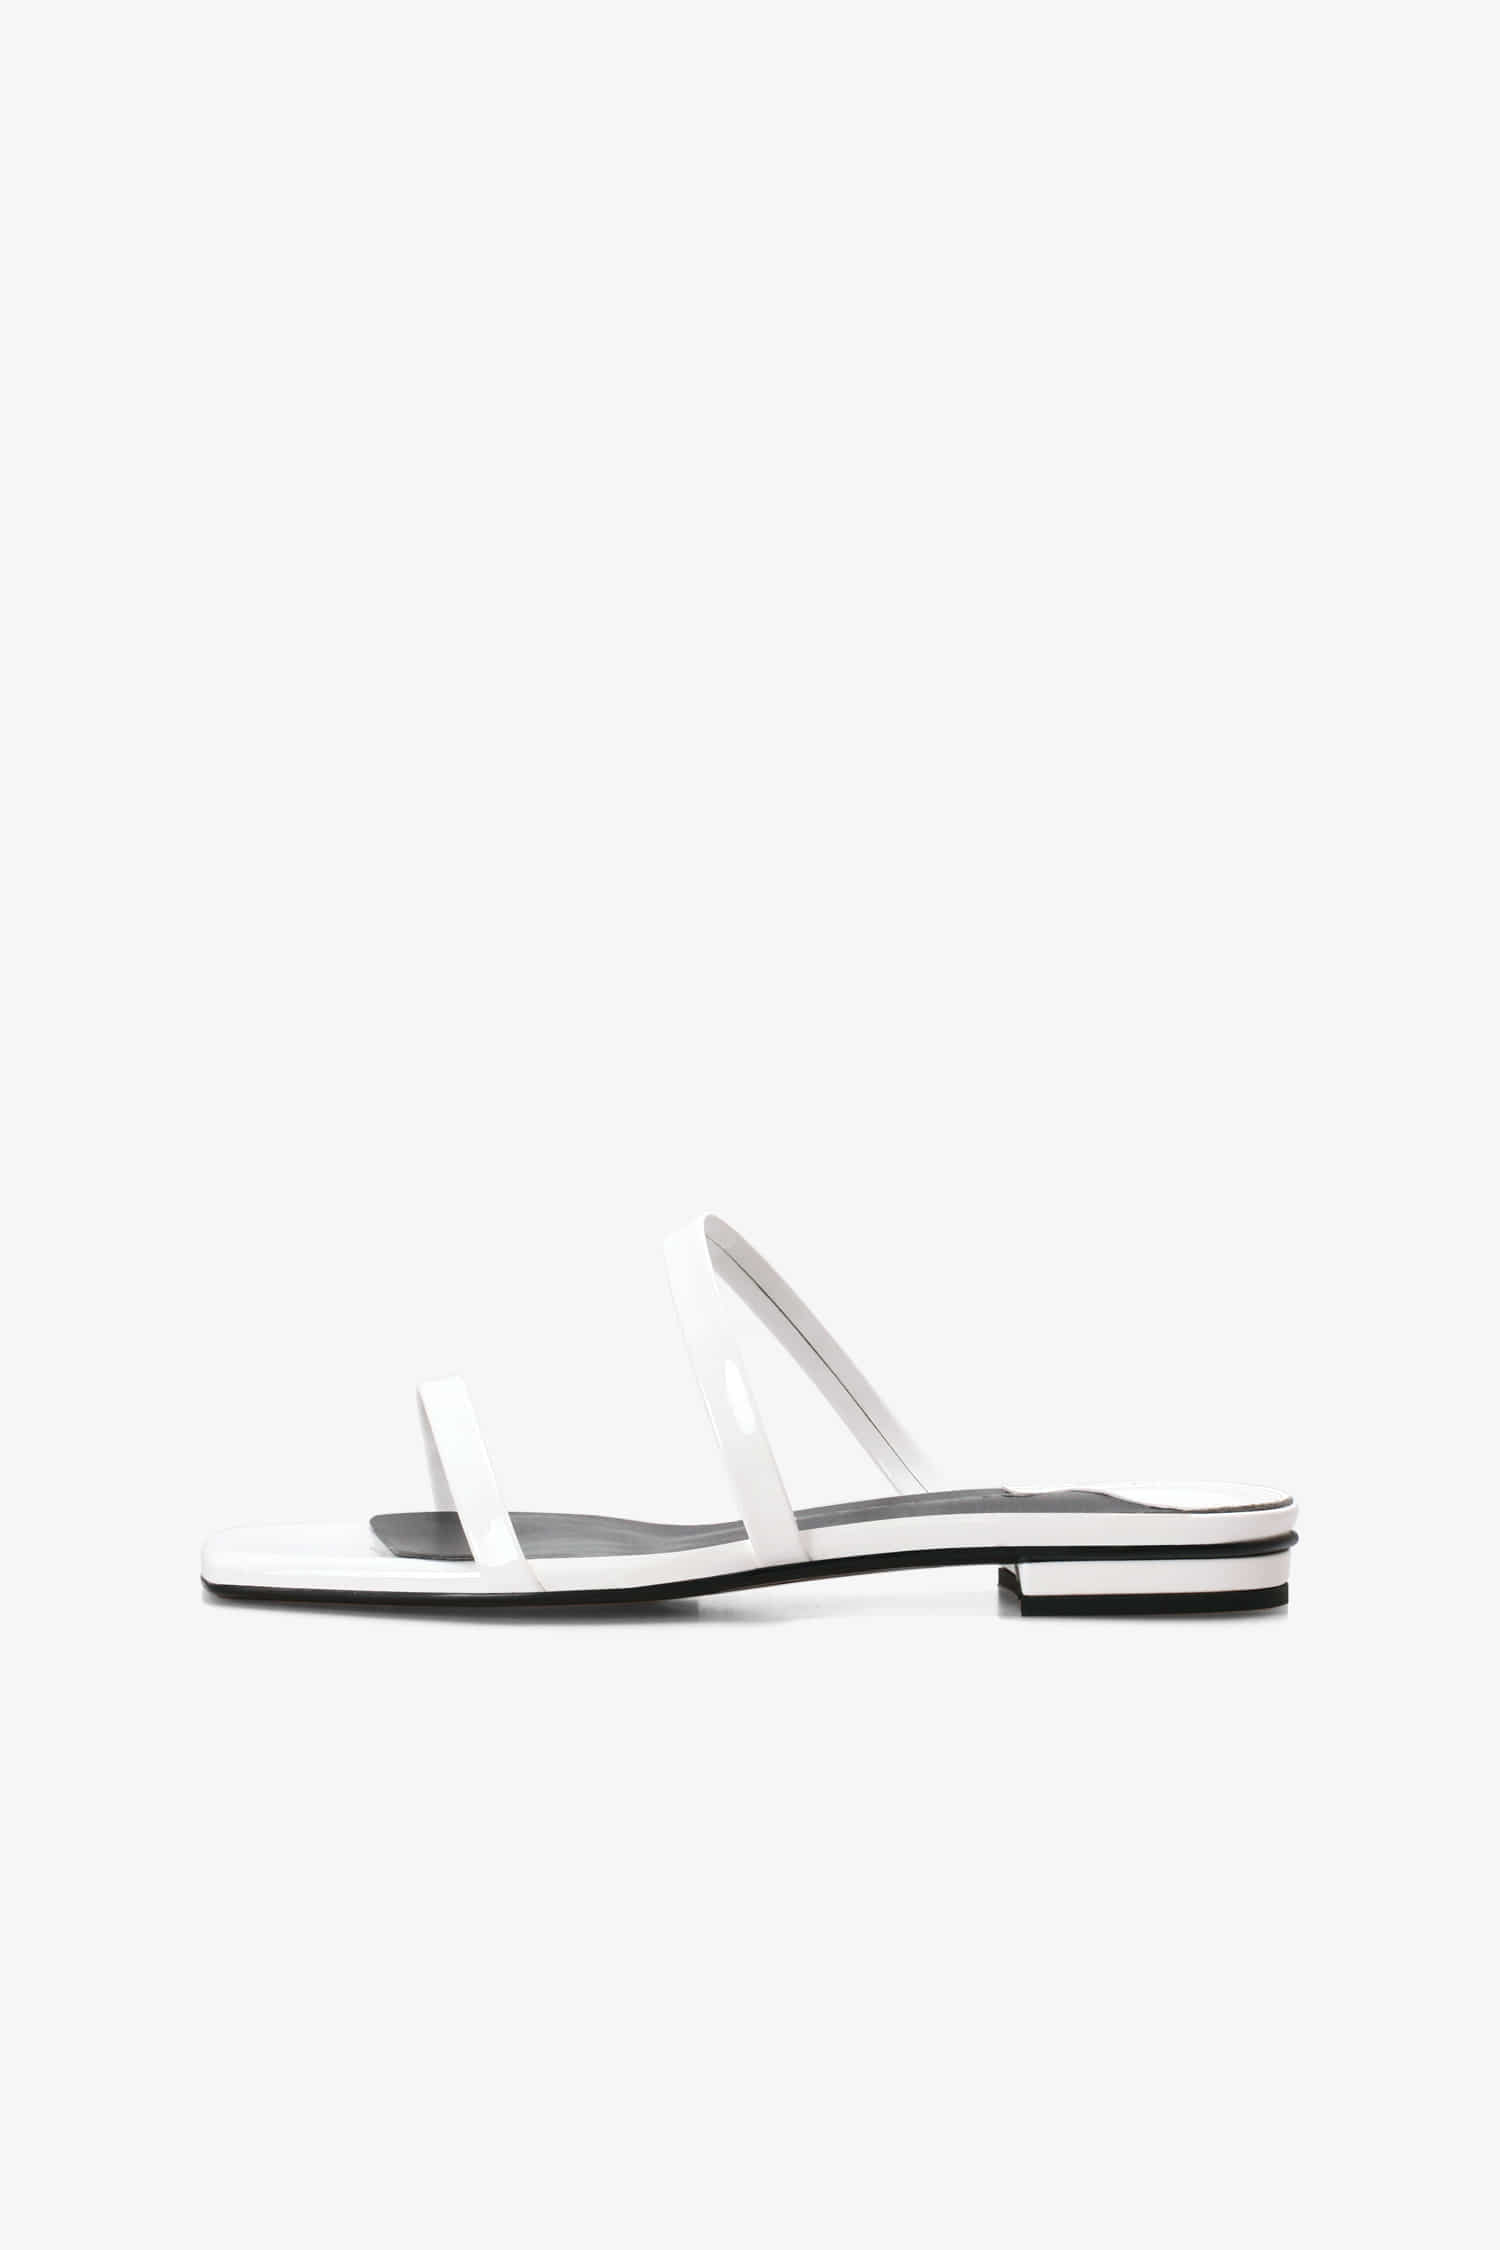 MM 301 (White Patent)